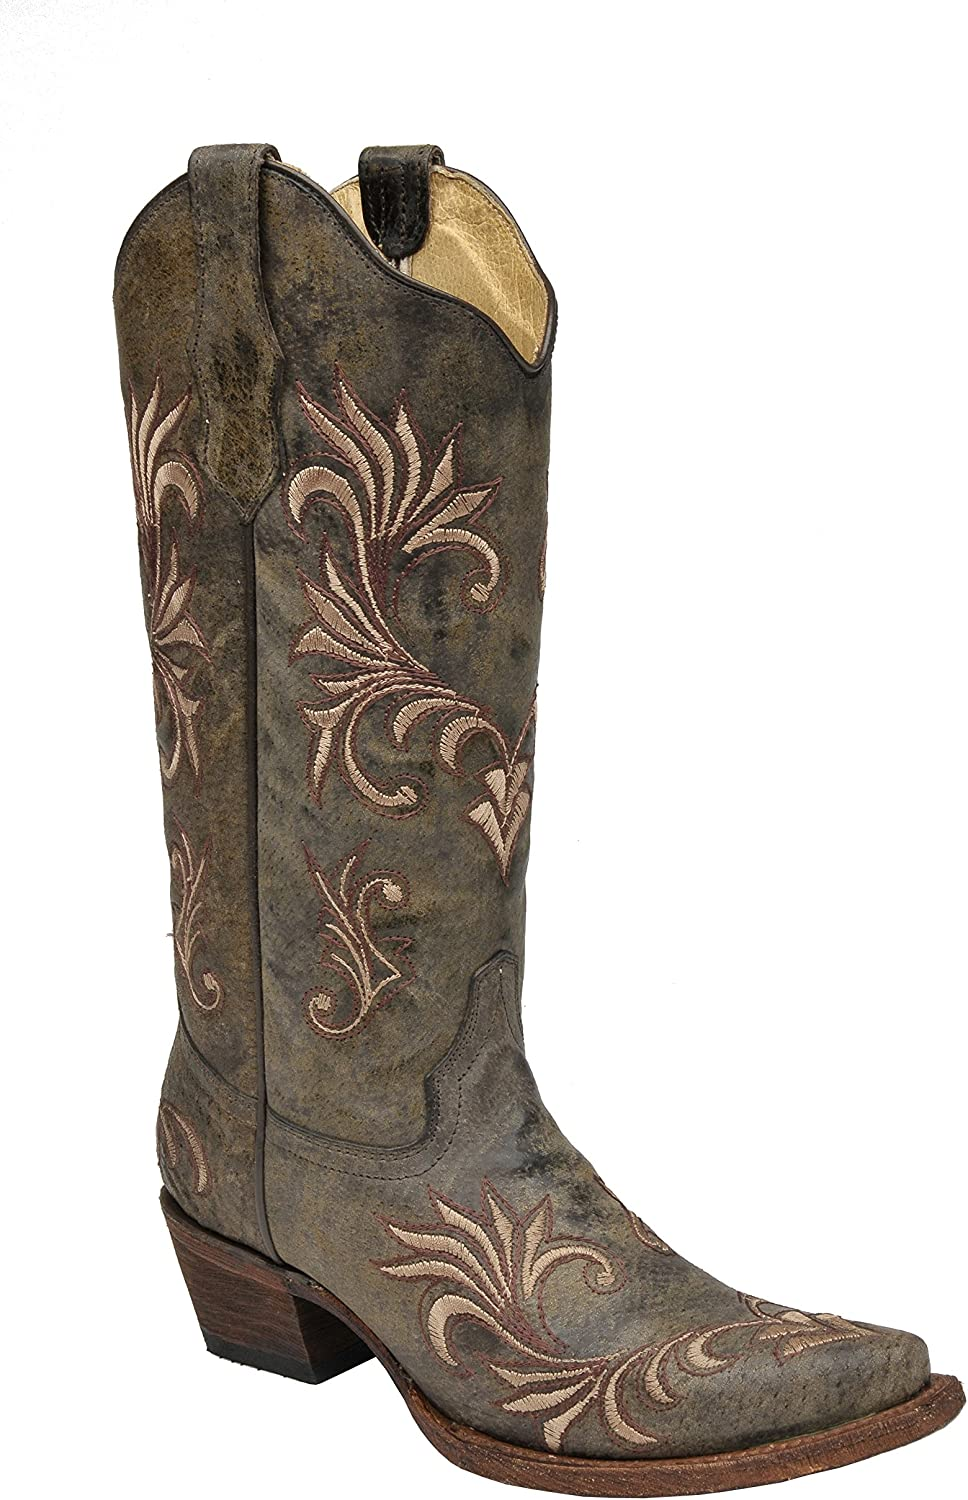 Corral Women's Circle G Distressed Filigree Embroidered Western Boot